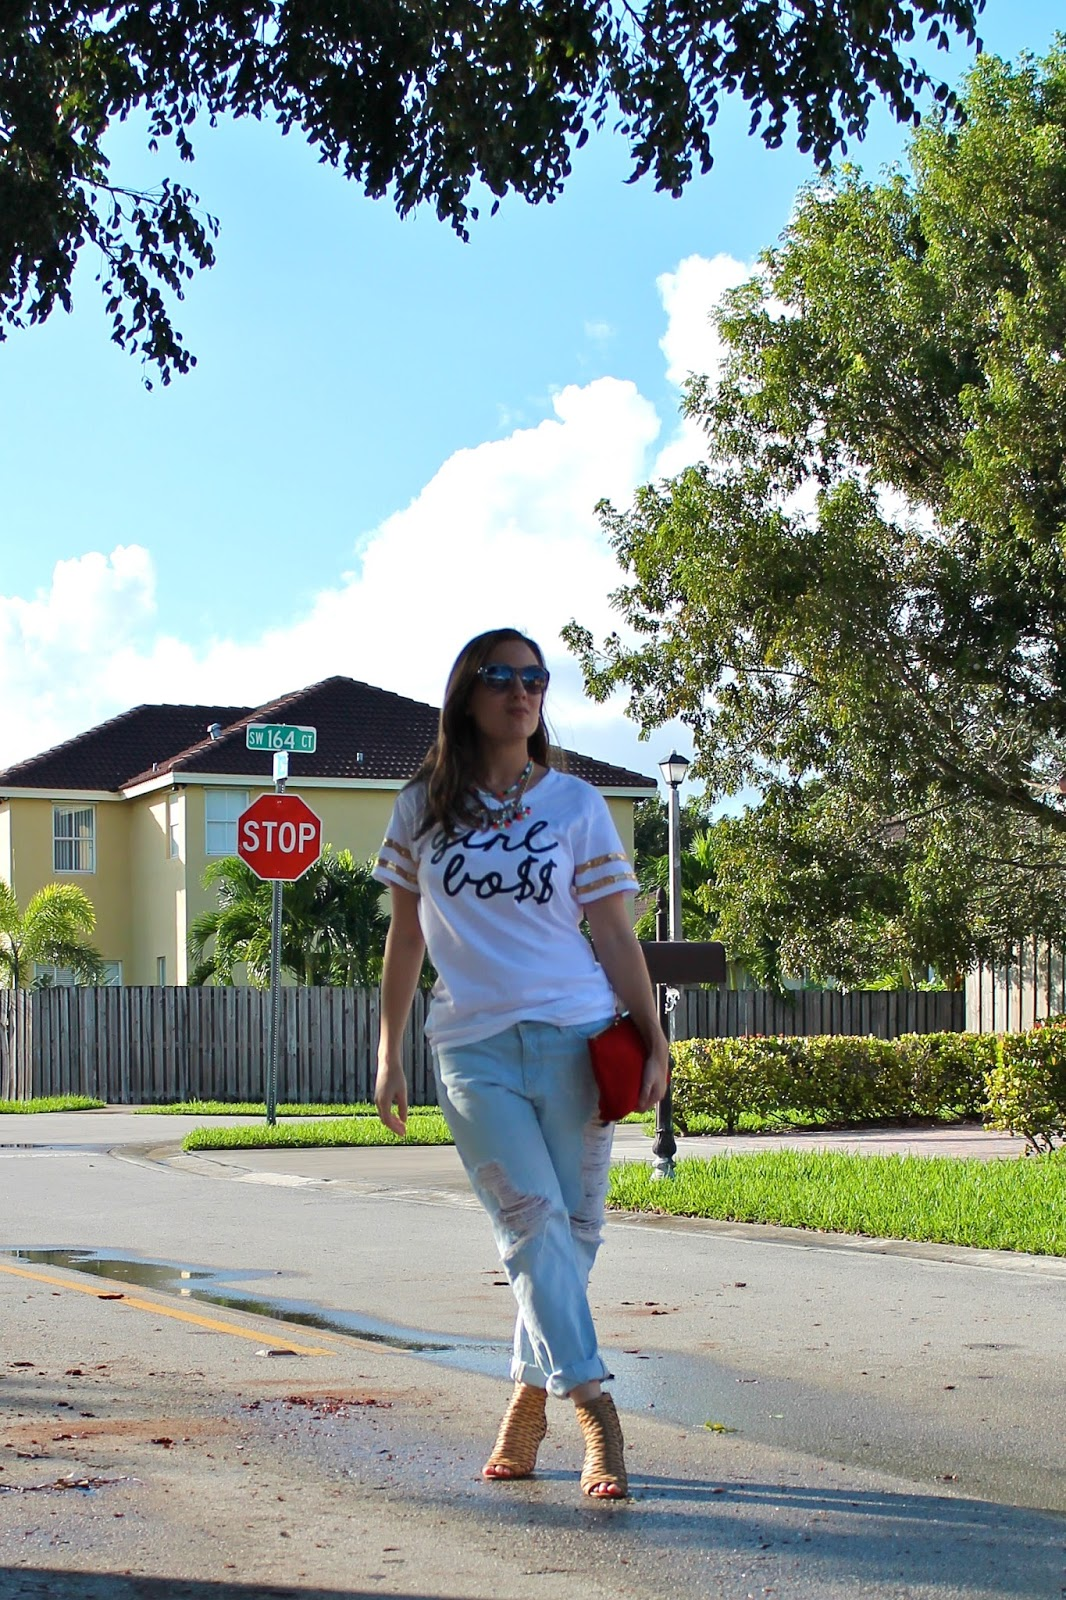 Love Alice Louise, etsy, gap, jeffrey campbell, vintage, J. Crew, nordstrom, fashion blogger, Miami fashion blogger, Miami style, graphic tee, Girl Boss, what I wore, ootd